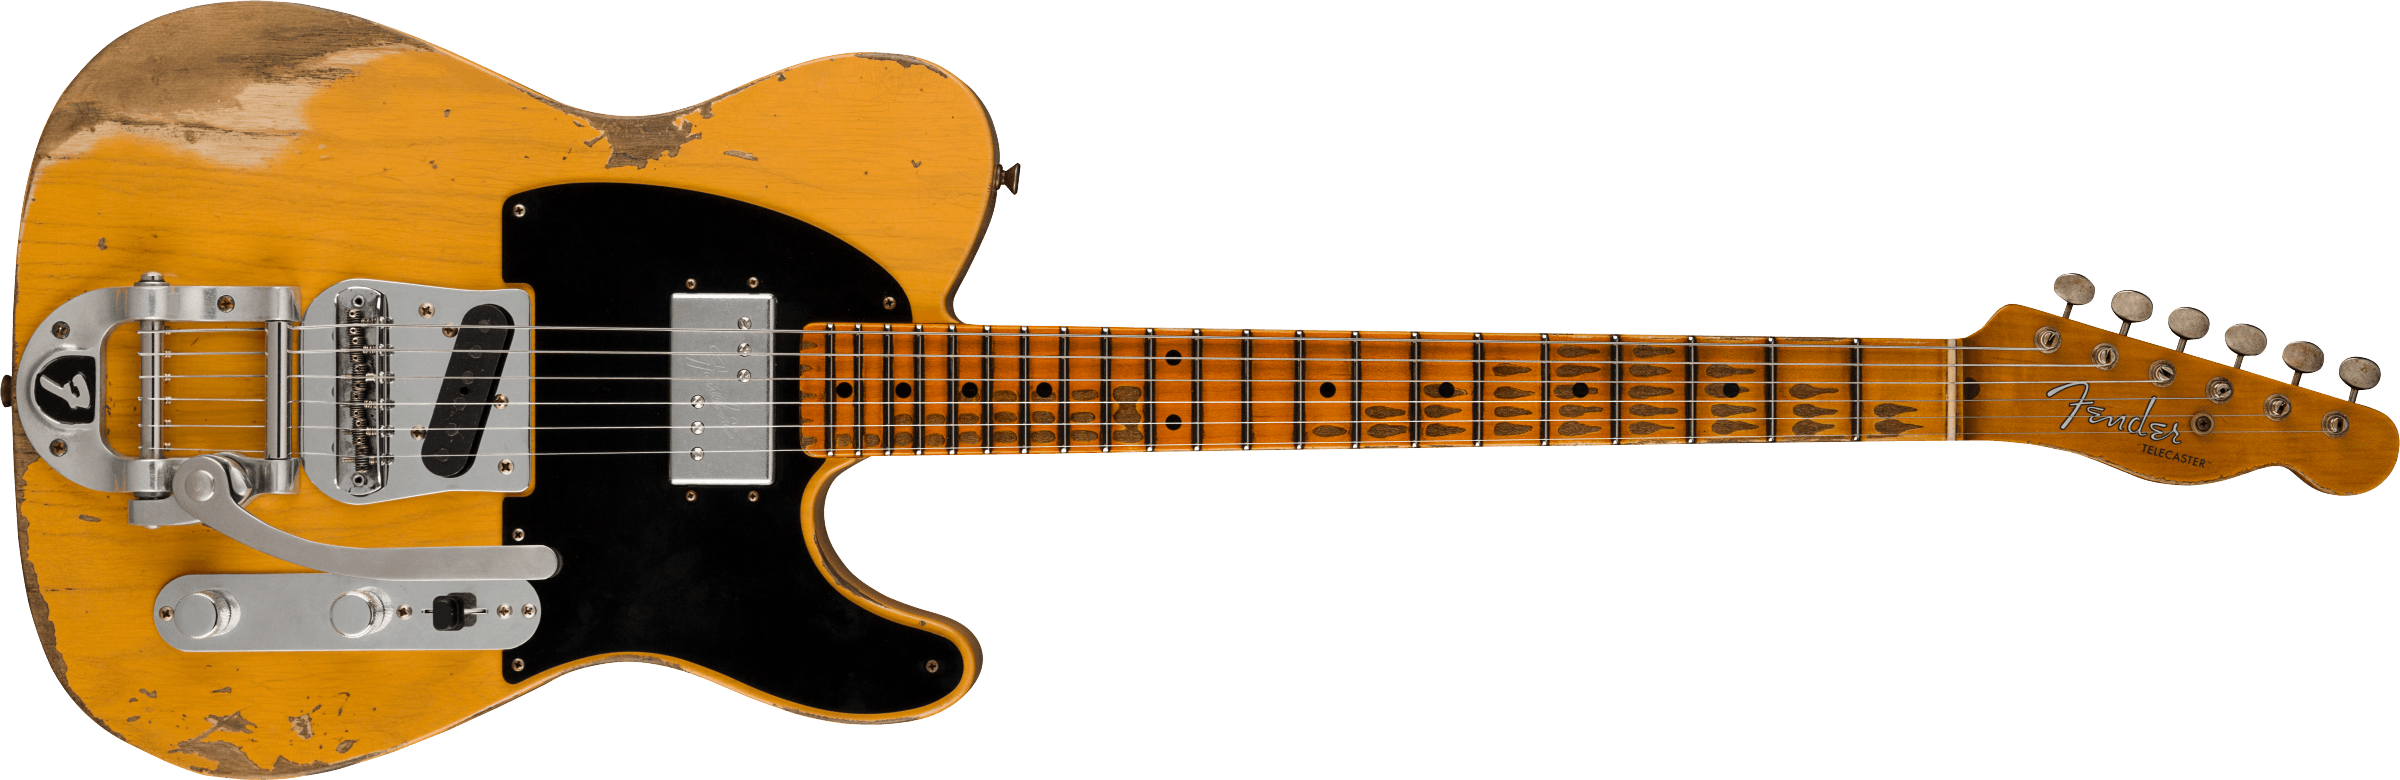 FENDER-Limited-Edition-Cunife-Blackguard-Tele-Heavy-Relic-Maple-Fingerboard-Aged-Butterscotch-Blonde-sku-571005150